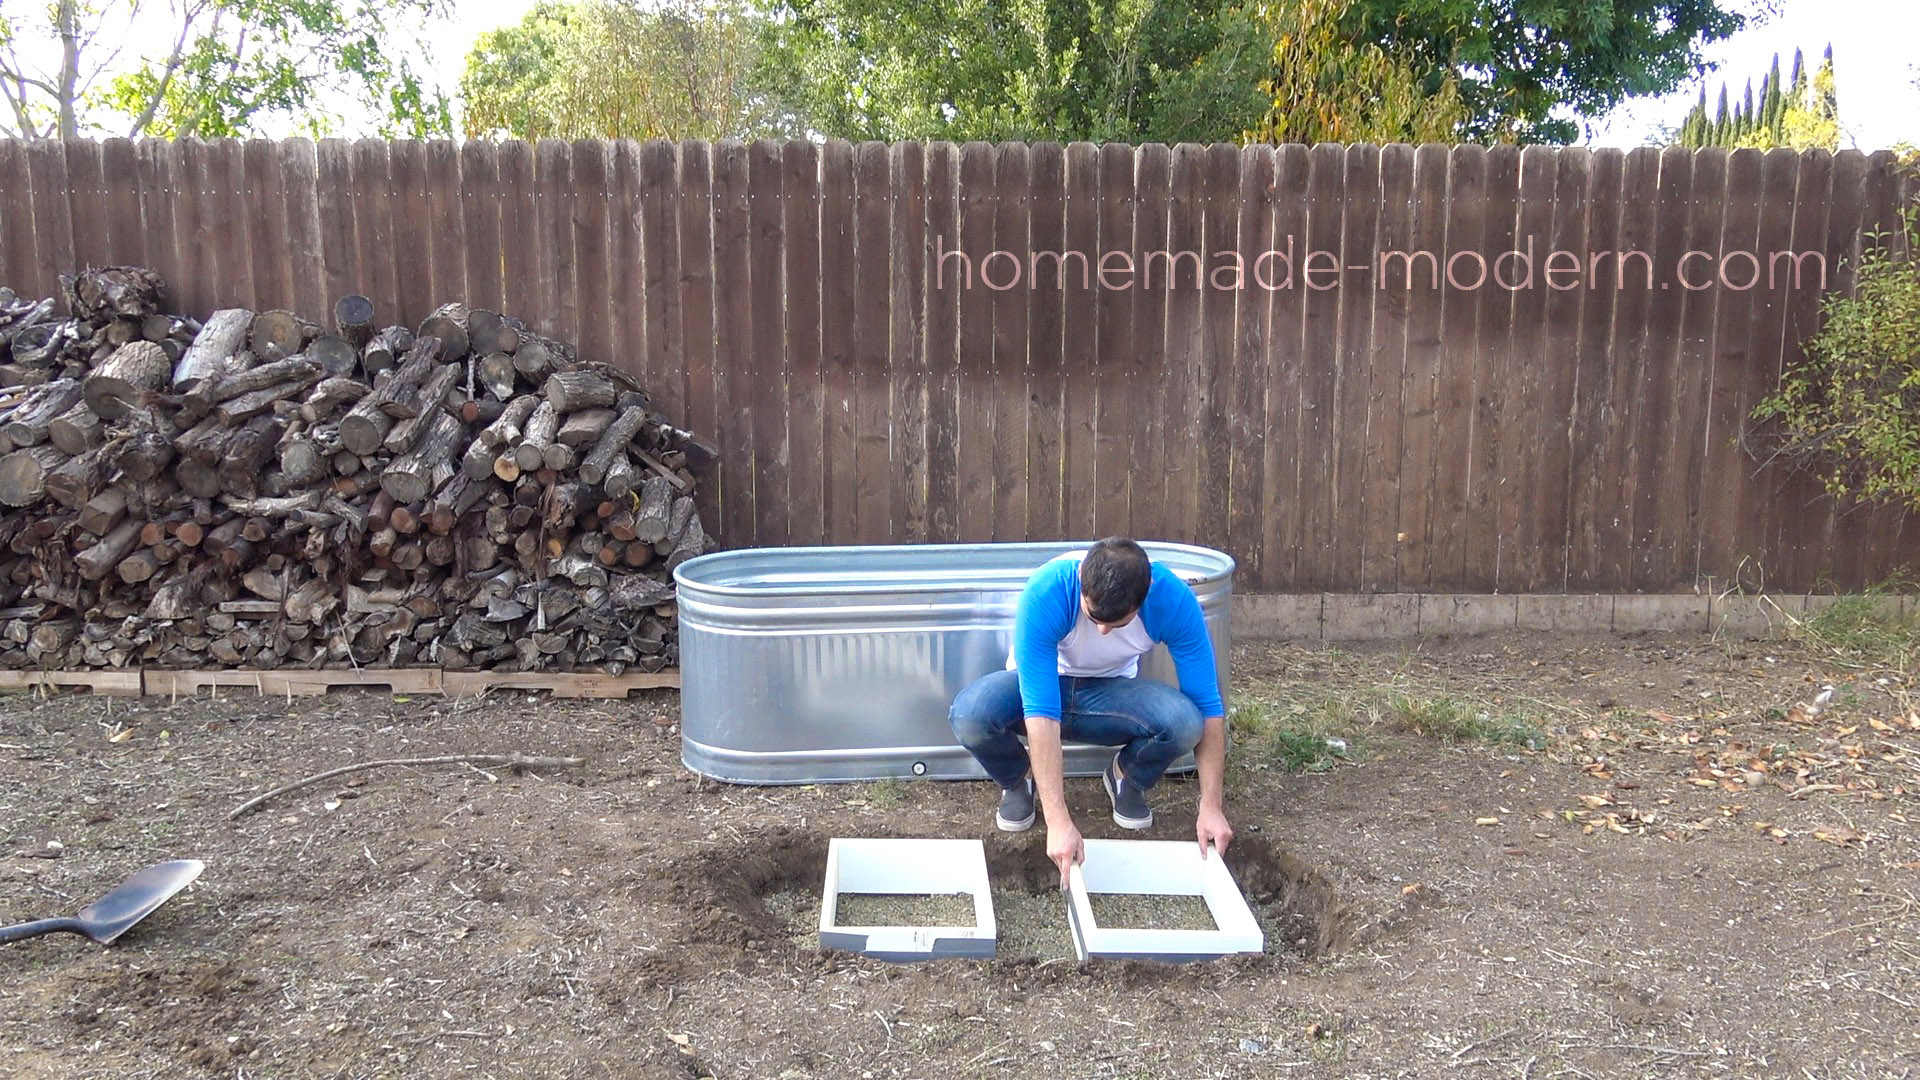 Diy Hot Tub Homemade Modern Ep112 Diy Wood Fired Hot Tub